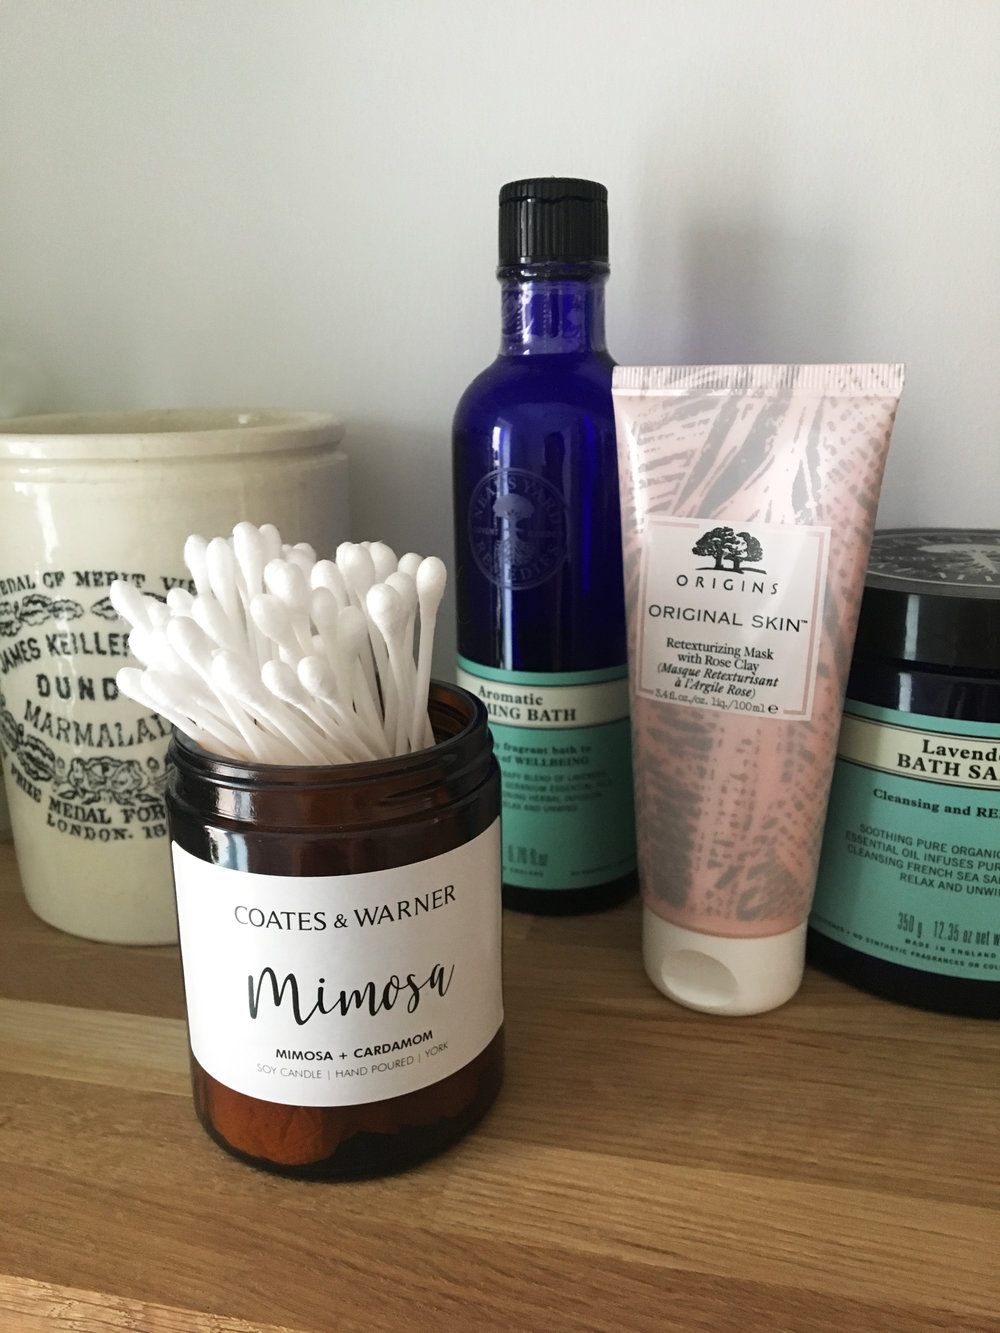 2. Bathroom Tidy - Gather empty jars on your bathroom shelf and fill them with your beauty-regime essentials. Our smaller jars are the ideal size for Q-tips and our larger jars are perfect for holding makeup brushes.